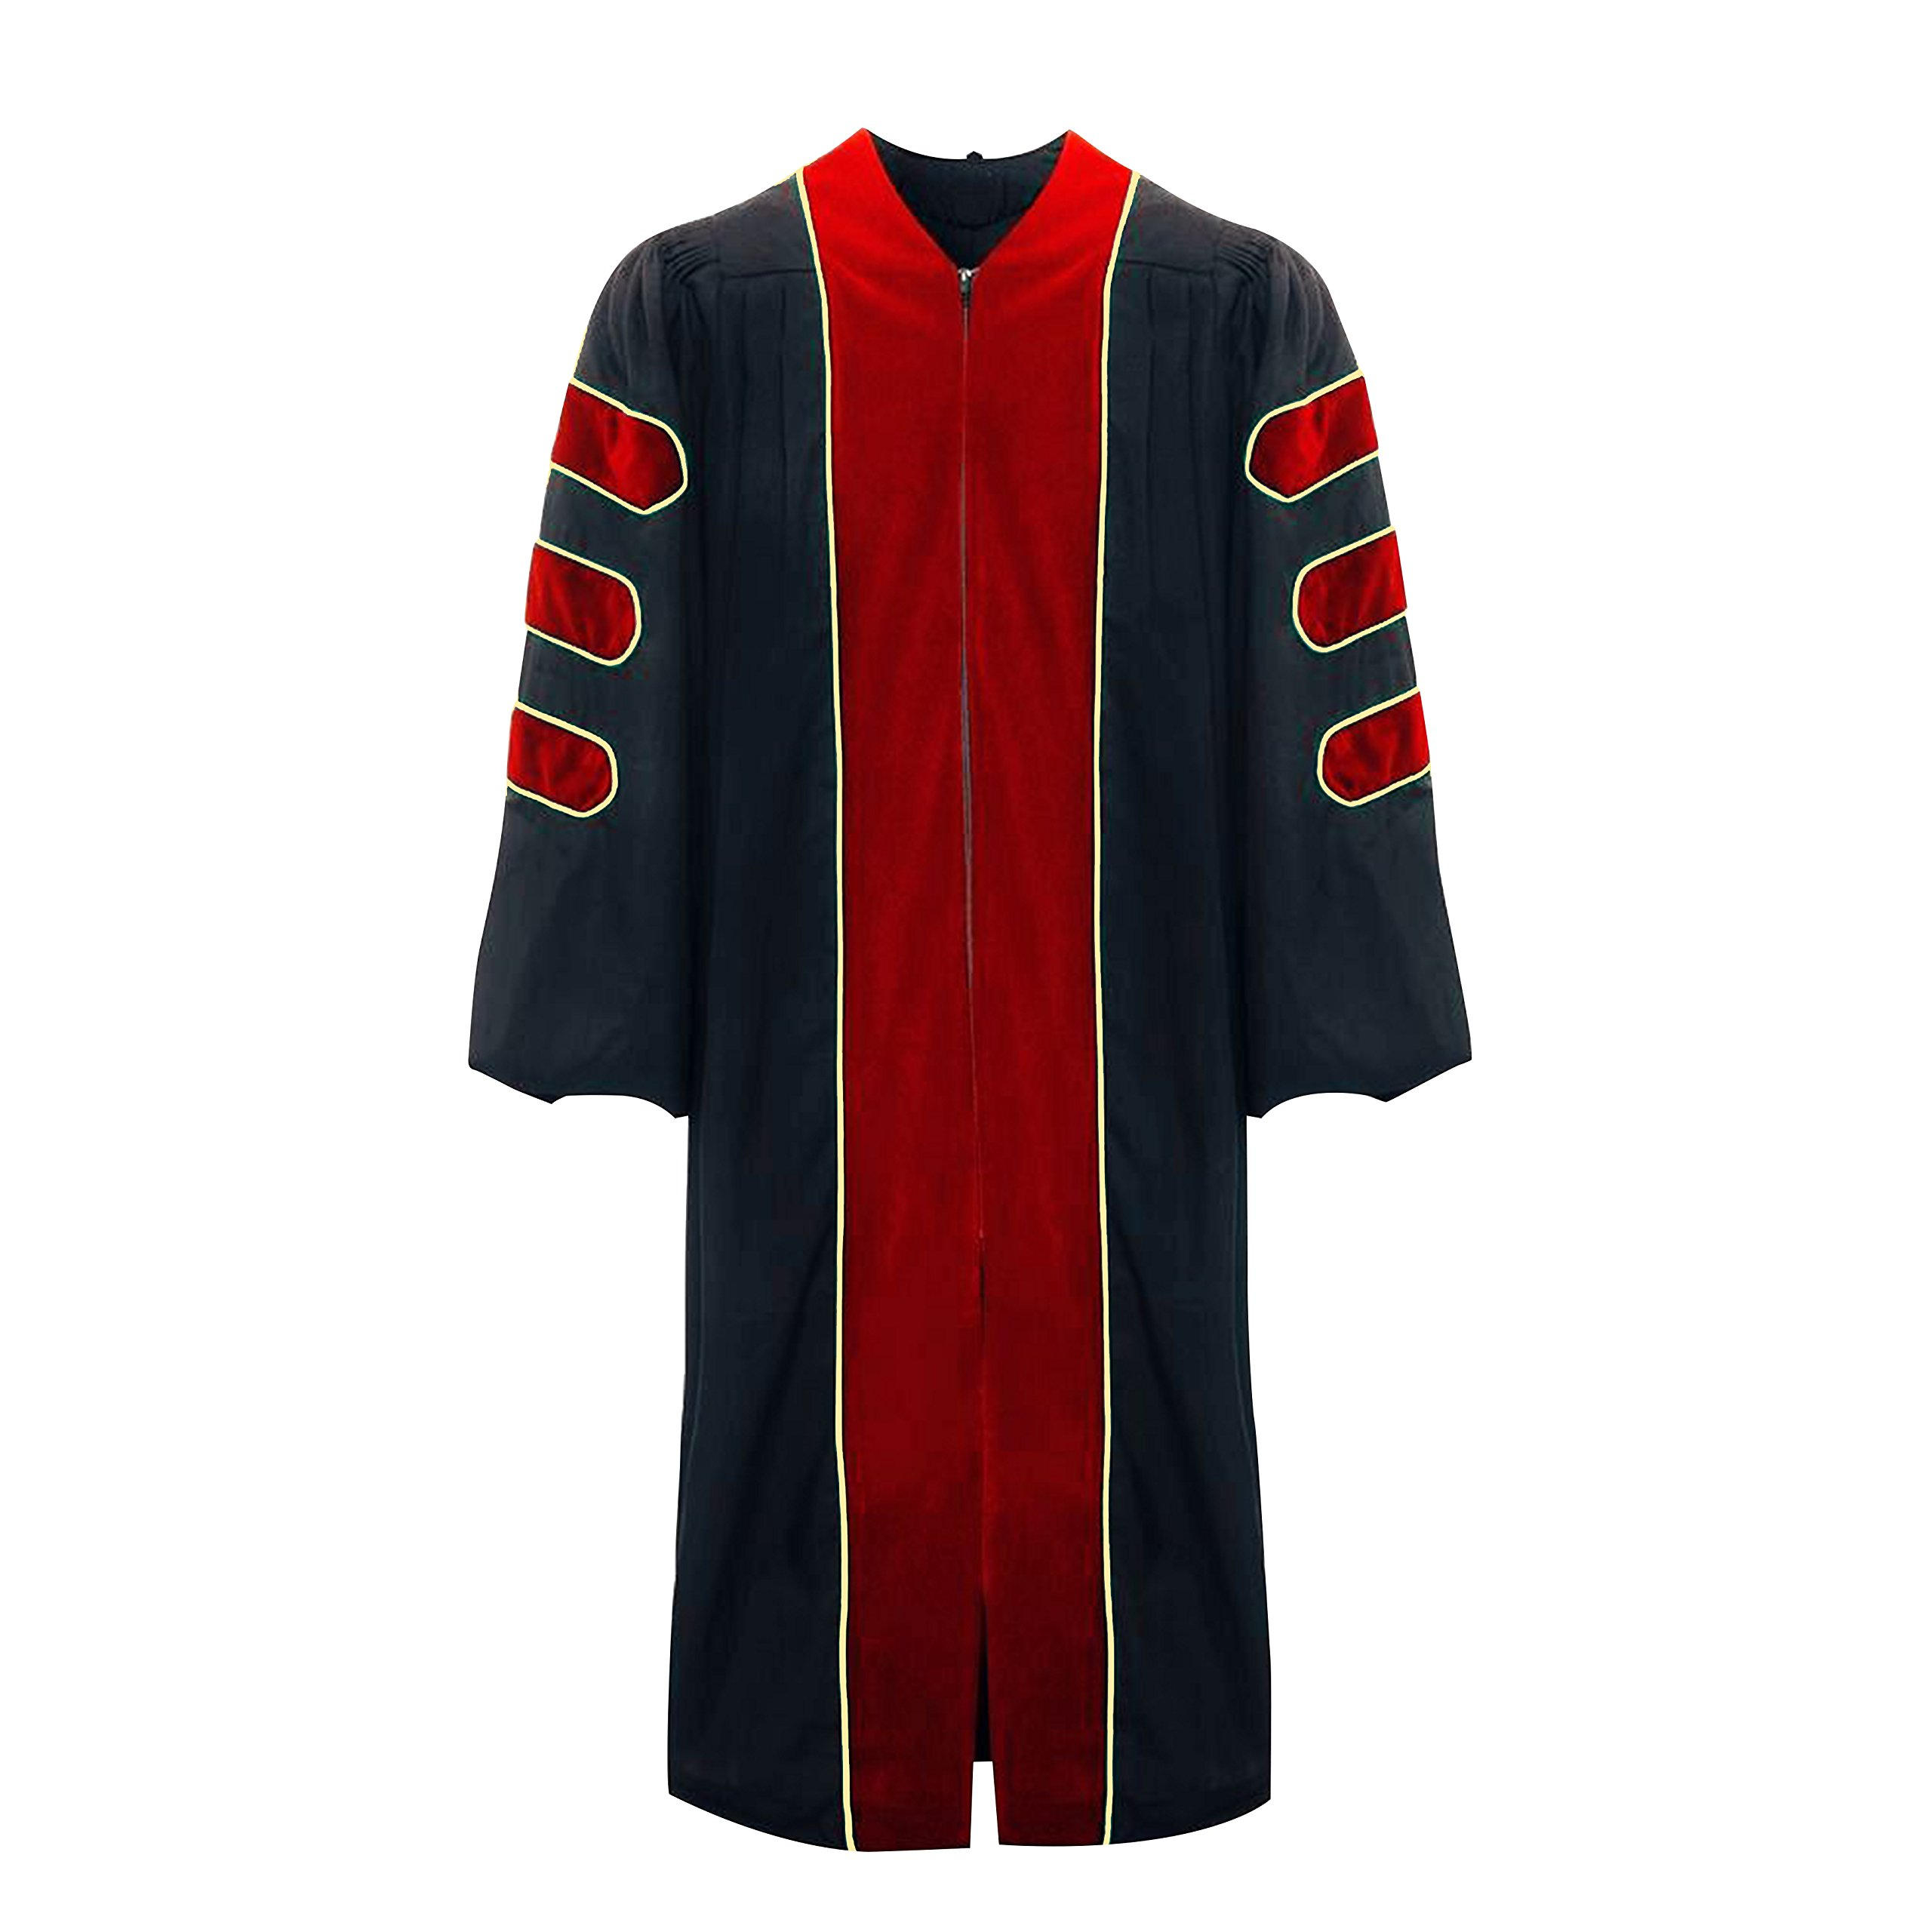 lescapsgown Deluxe Doctoral Graduation Gown-Red Trim Gold Piping(Red Size 51) by lescapsgown